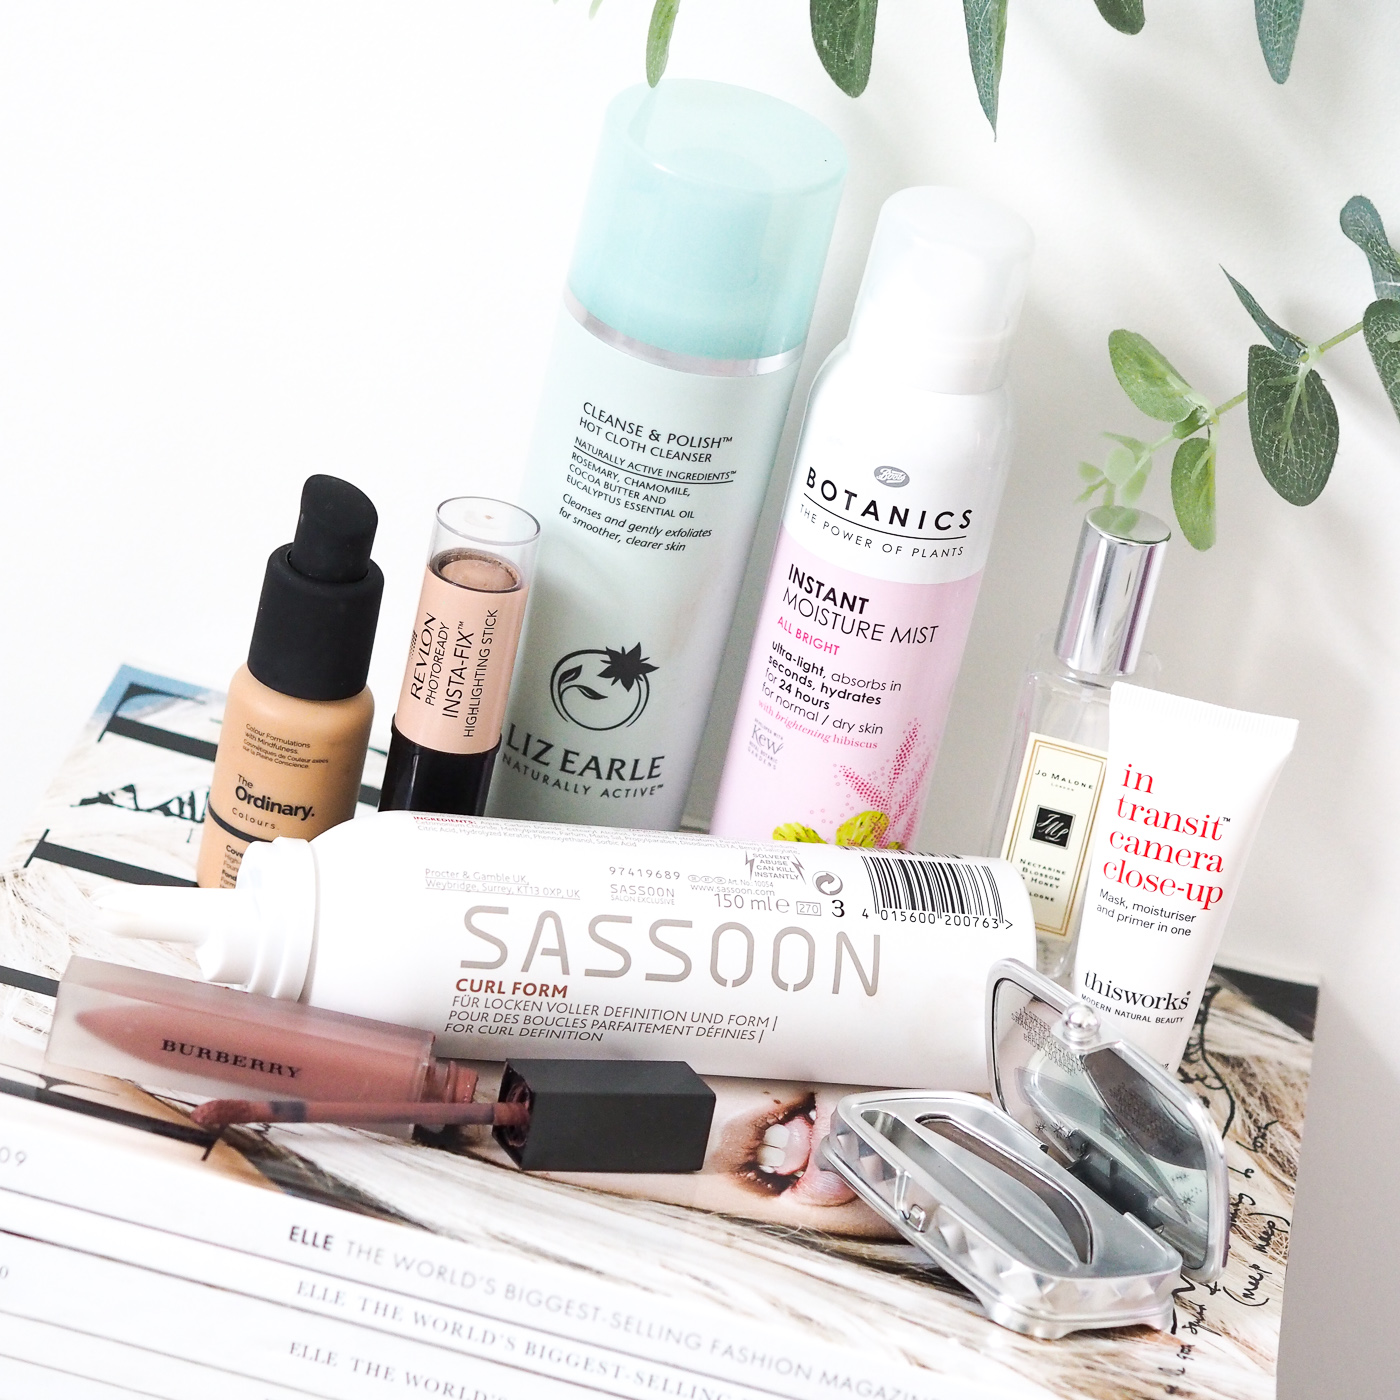 2017 Beauty and Skincare favourites I'll still be using in 2018